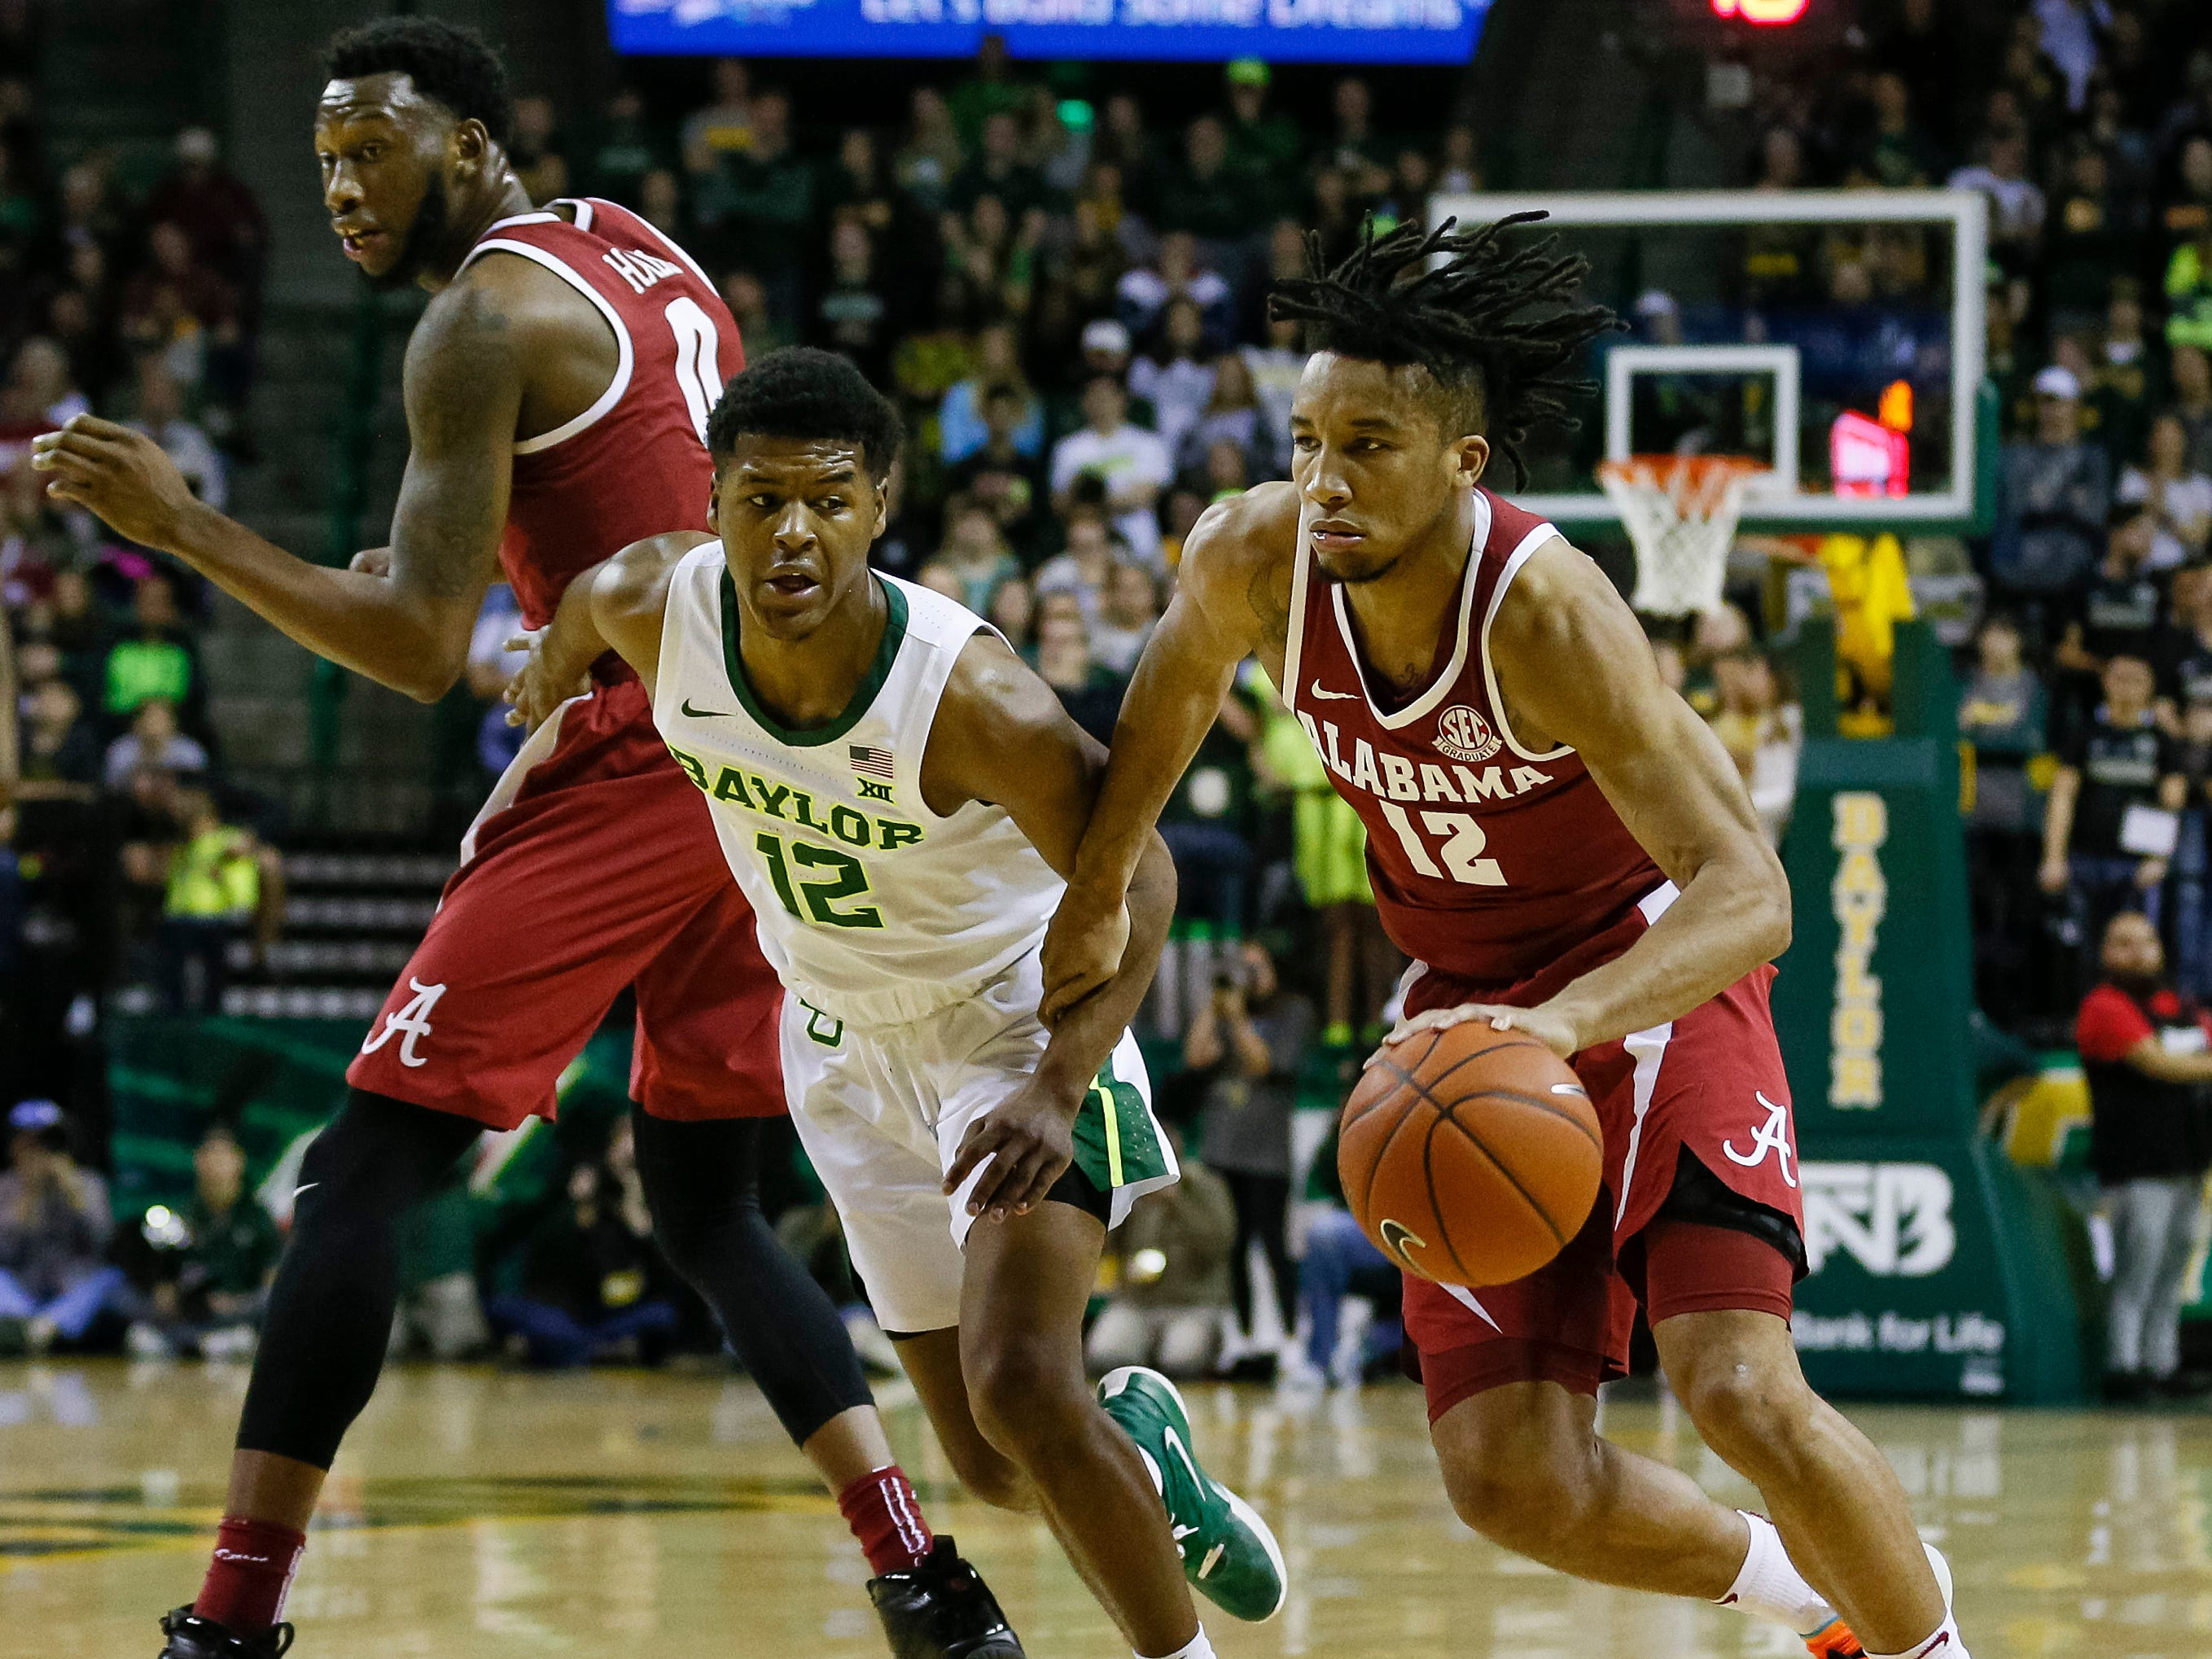 Jan 26, 2019; Waco, TX, USA; Alabama Crimson Tide guard Dazon Ingram (12) dribbles the ball around against the Baylor Bears during the first half at Ferrell Center. Mandatory Credit: Ray Carlin-USA TODAY Sports